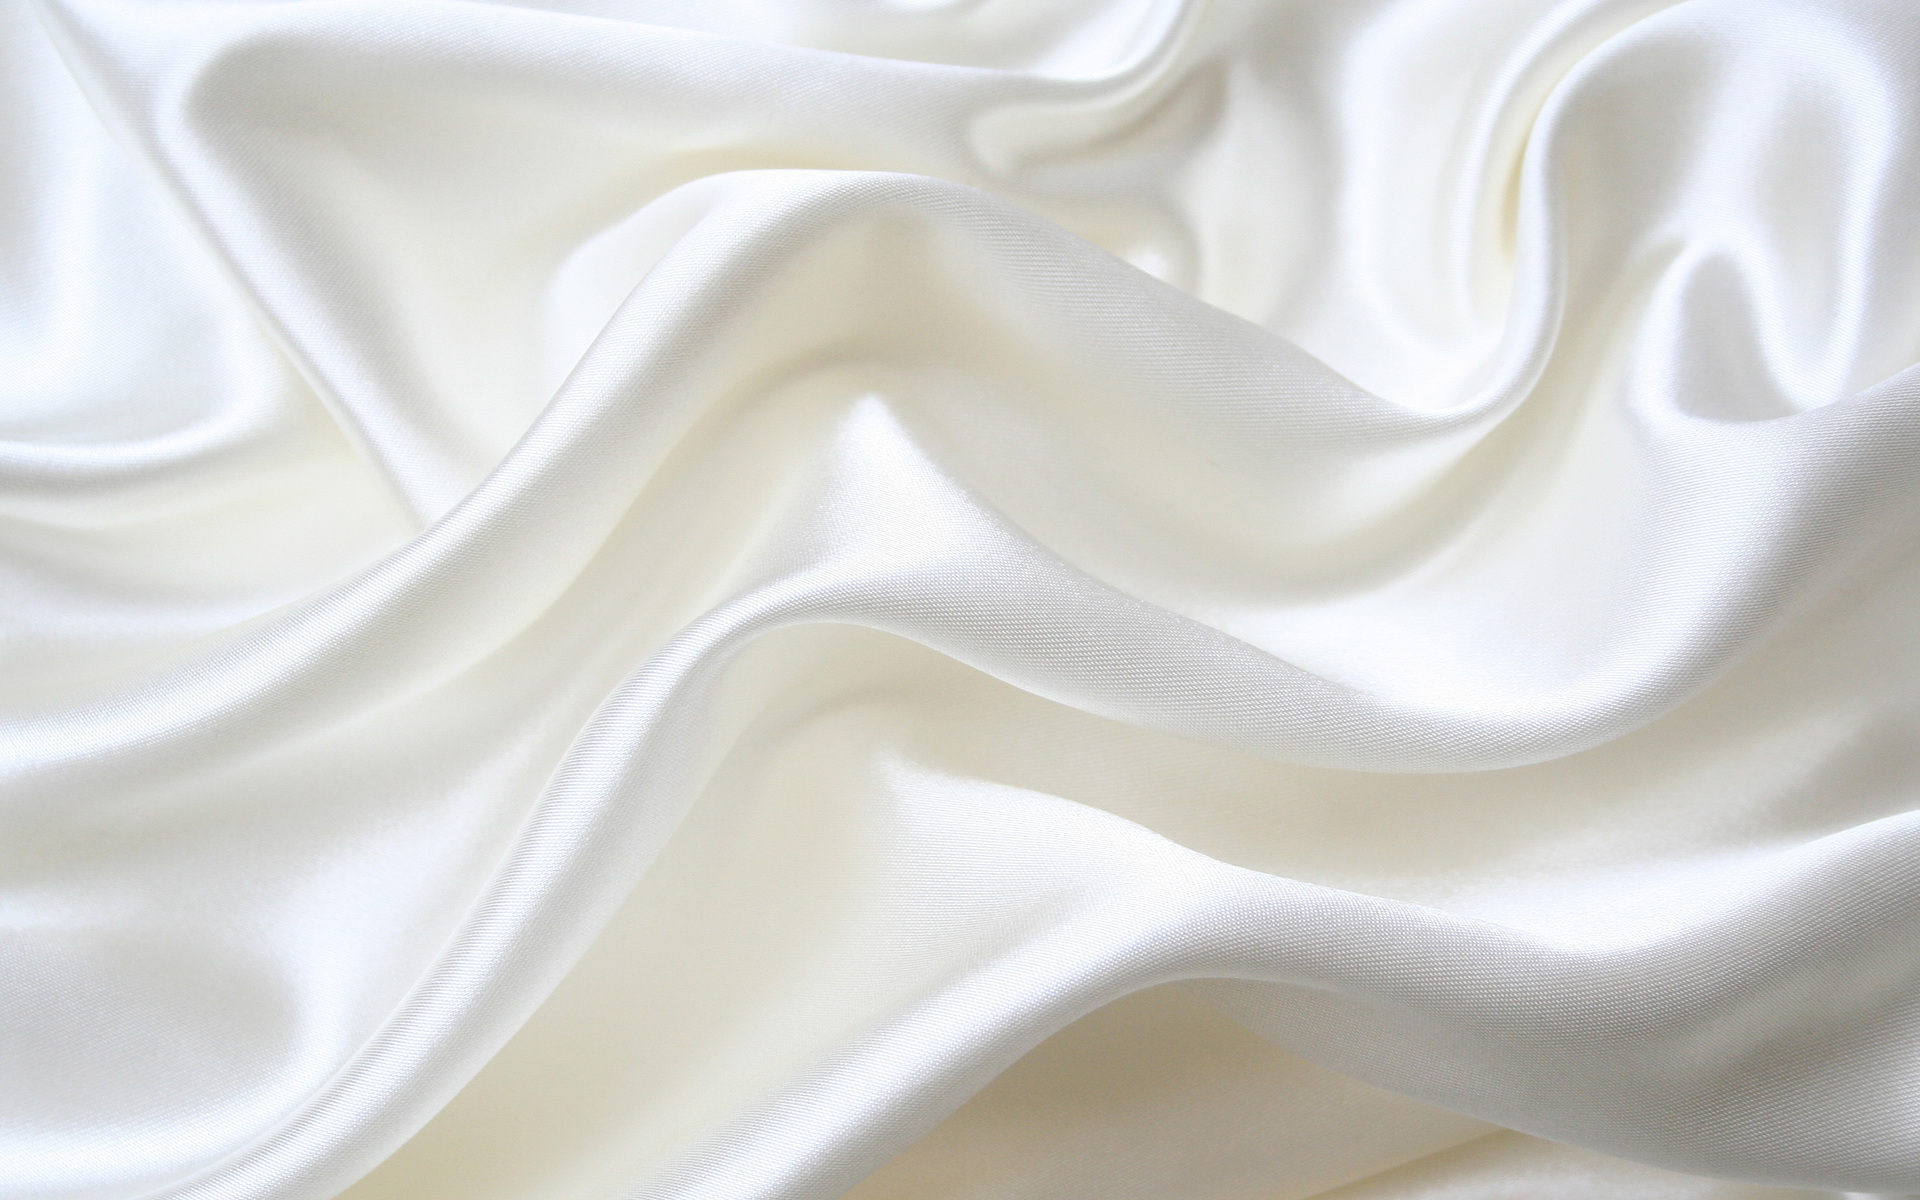 texture, background, white silk fabric cloth, download photo, white cloth texture